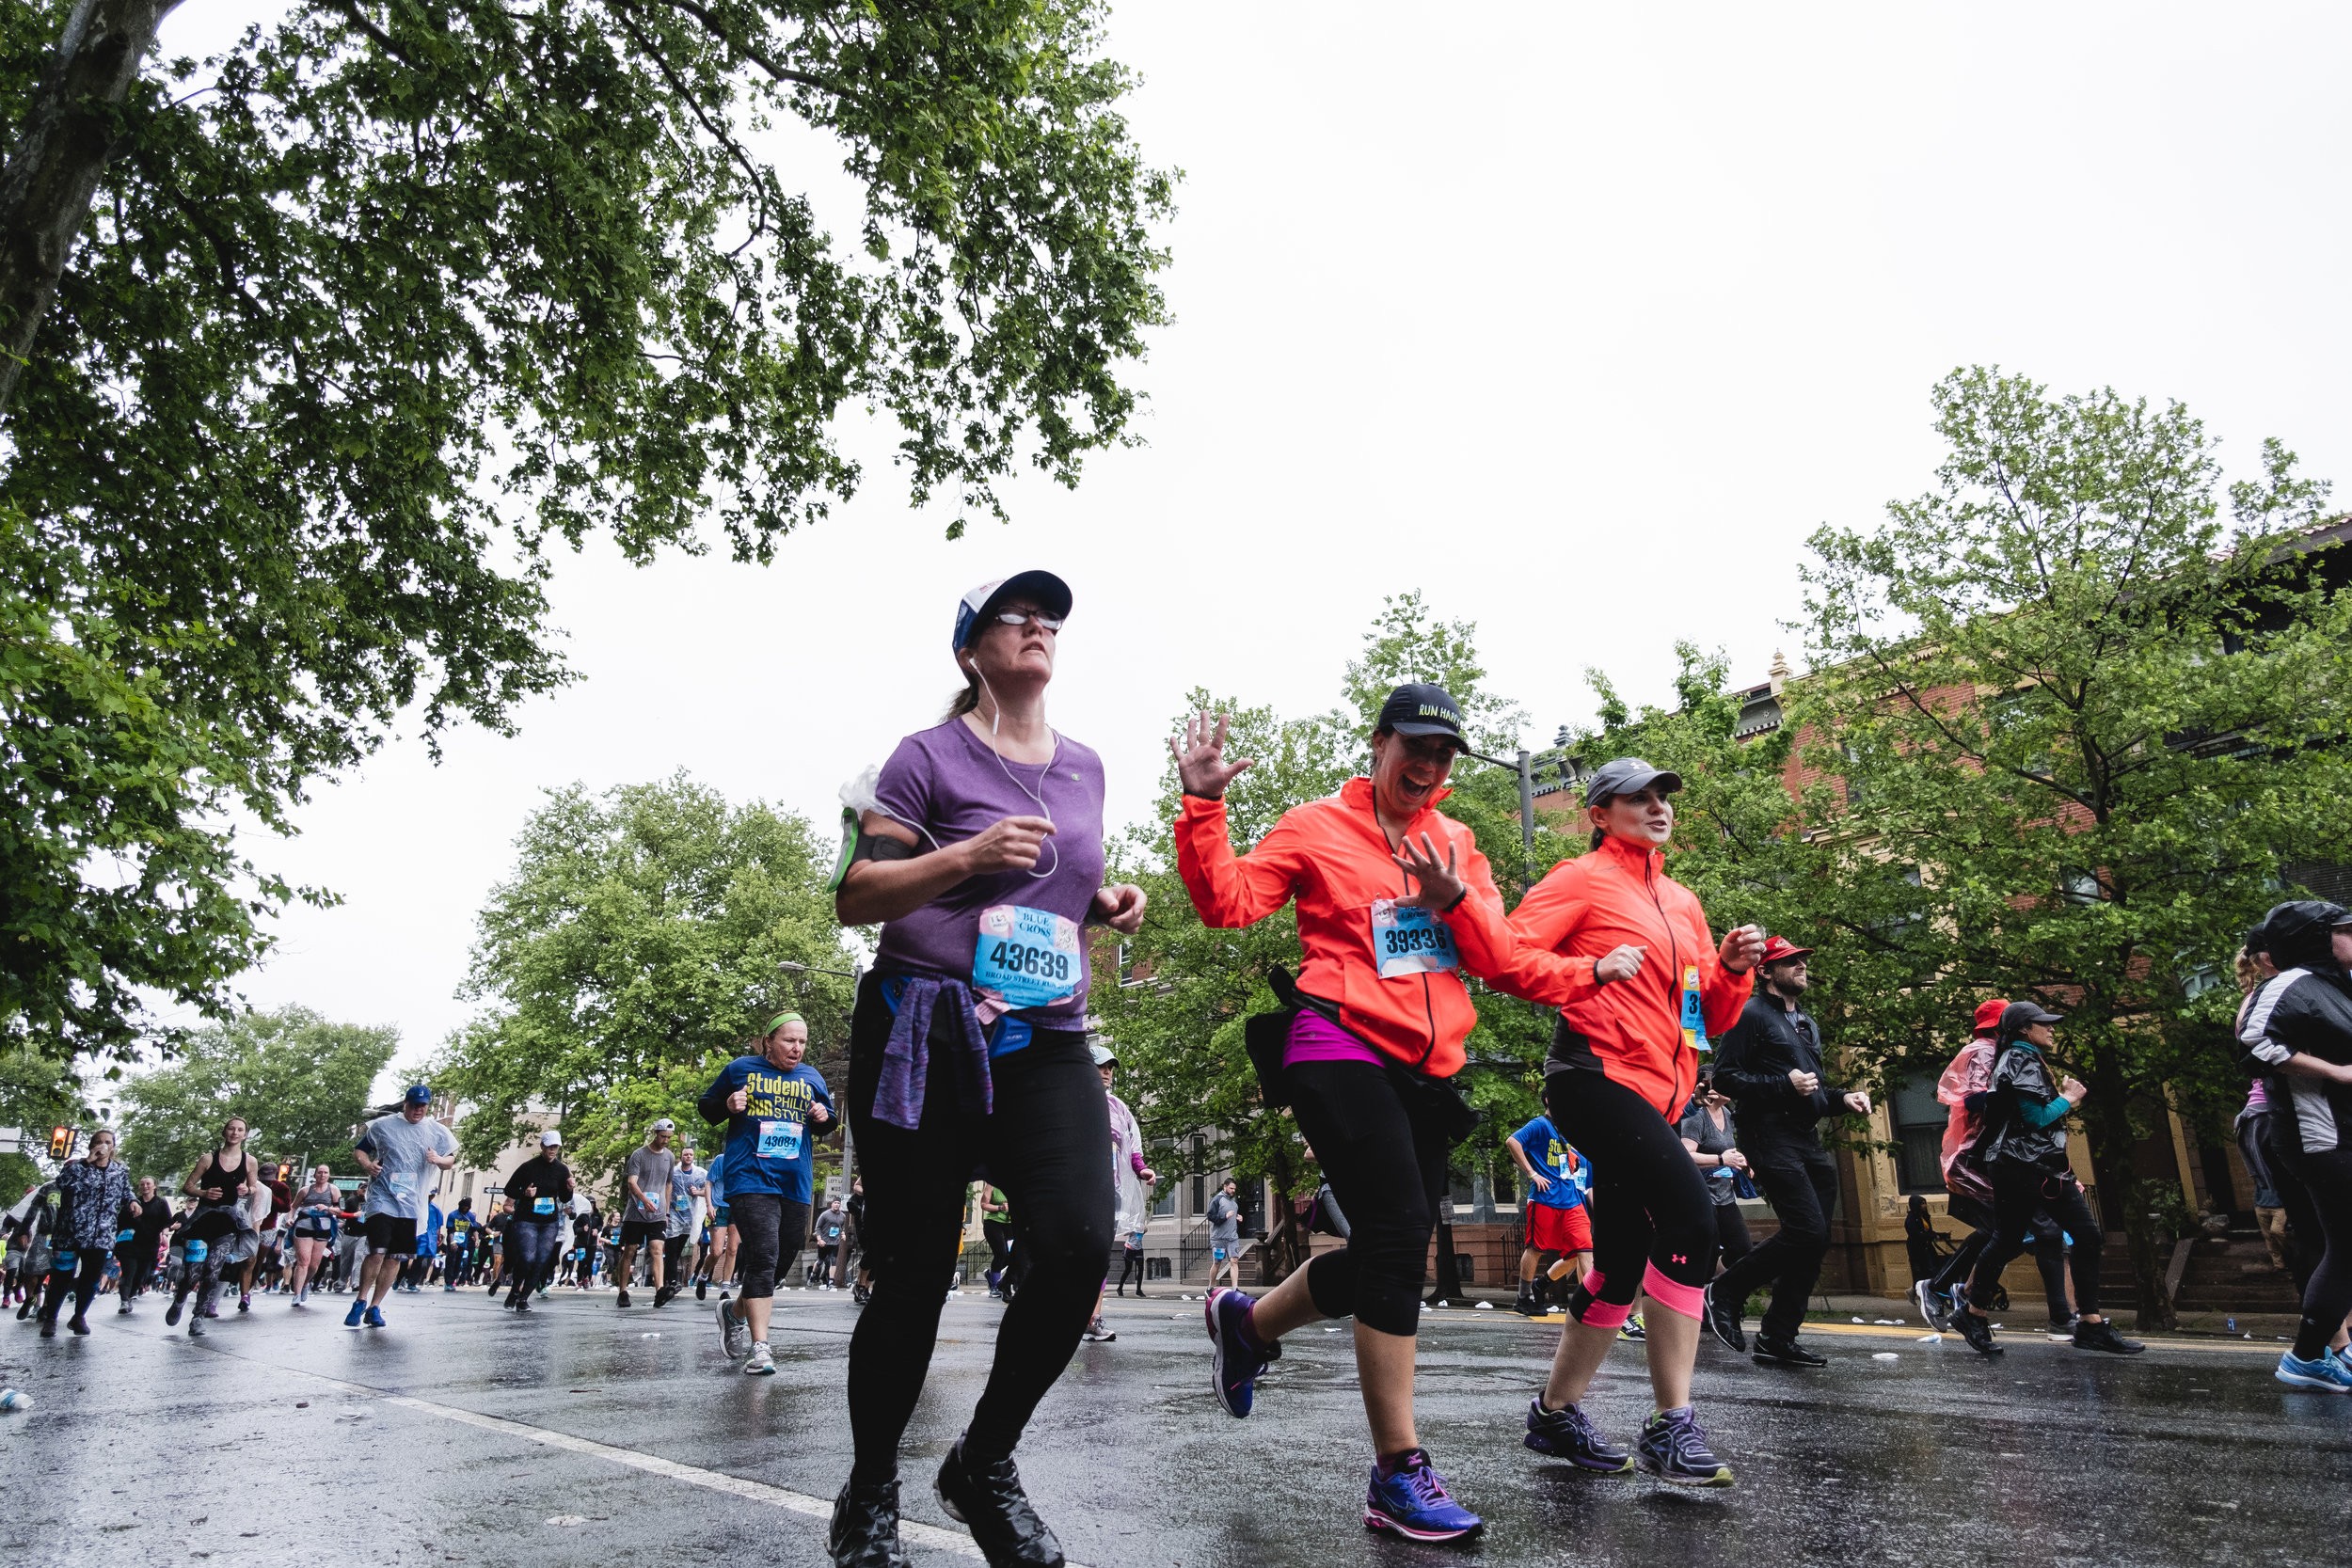 2019_BROAD ST RUN_EVENTS_THE PHILLY CHECKLIST-4.jpg